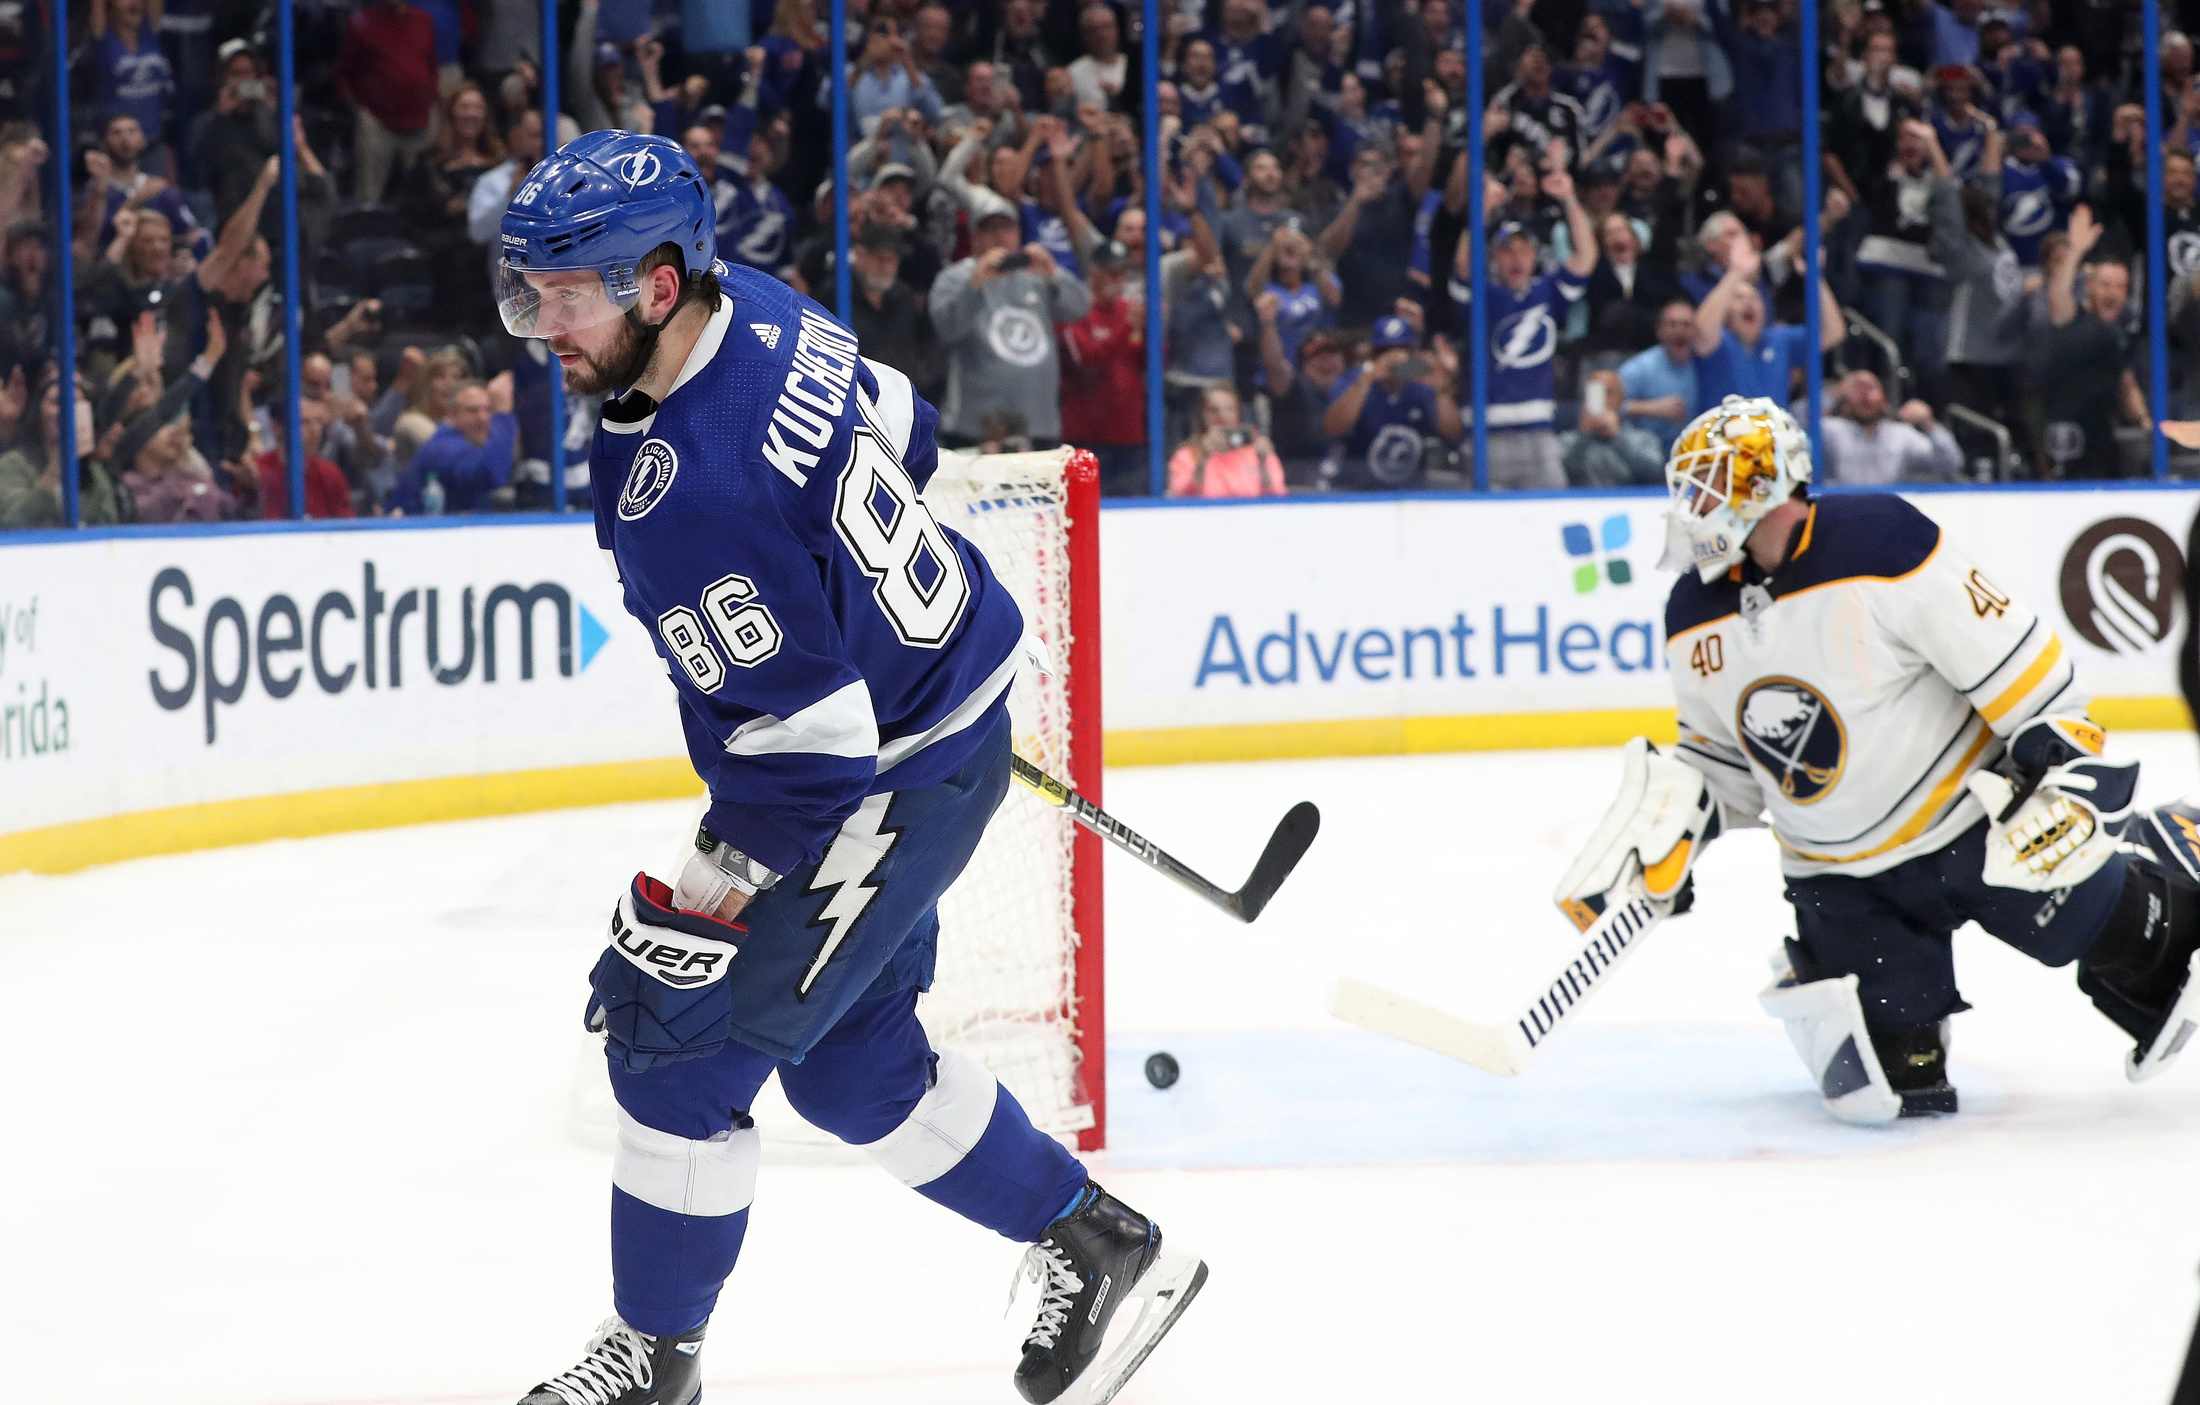 Lightning defeat Sabres 2-1 in shootout  a9ad1a0c5dfb